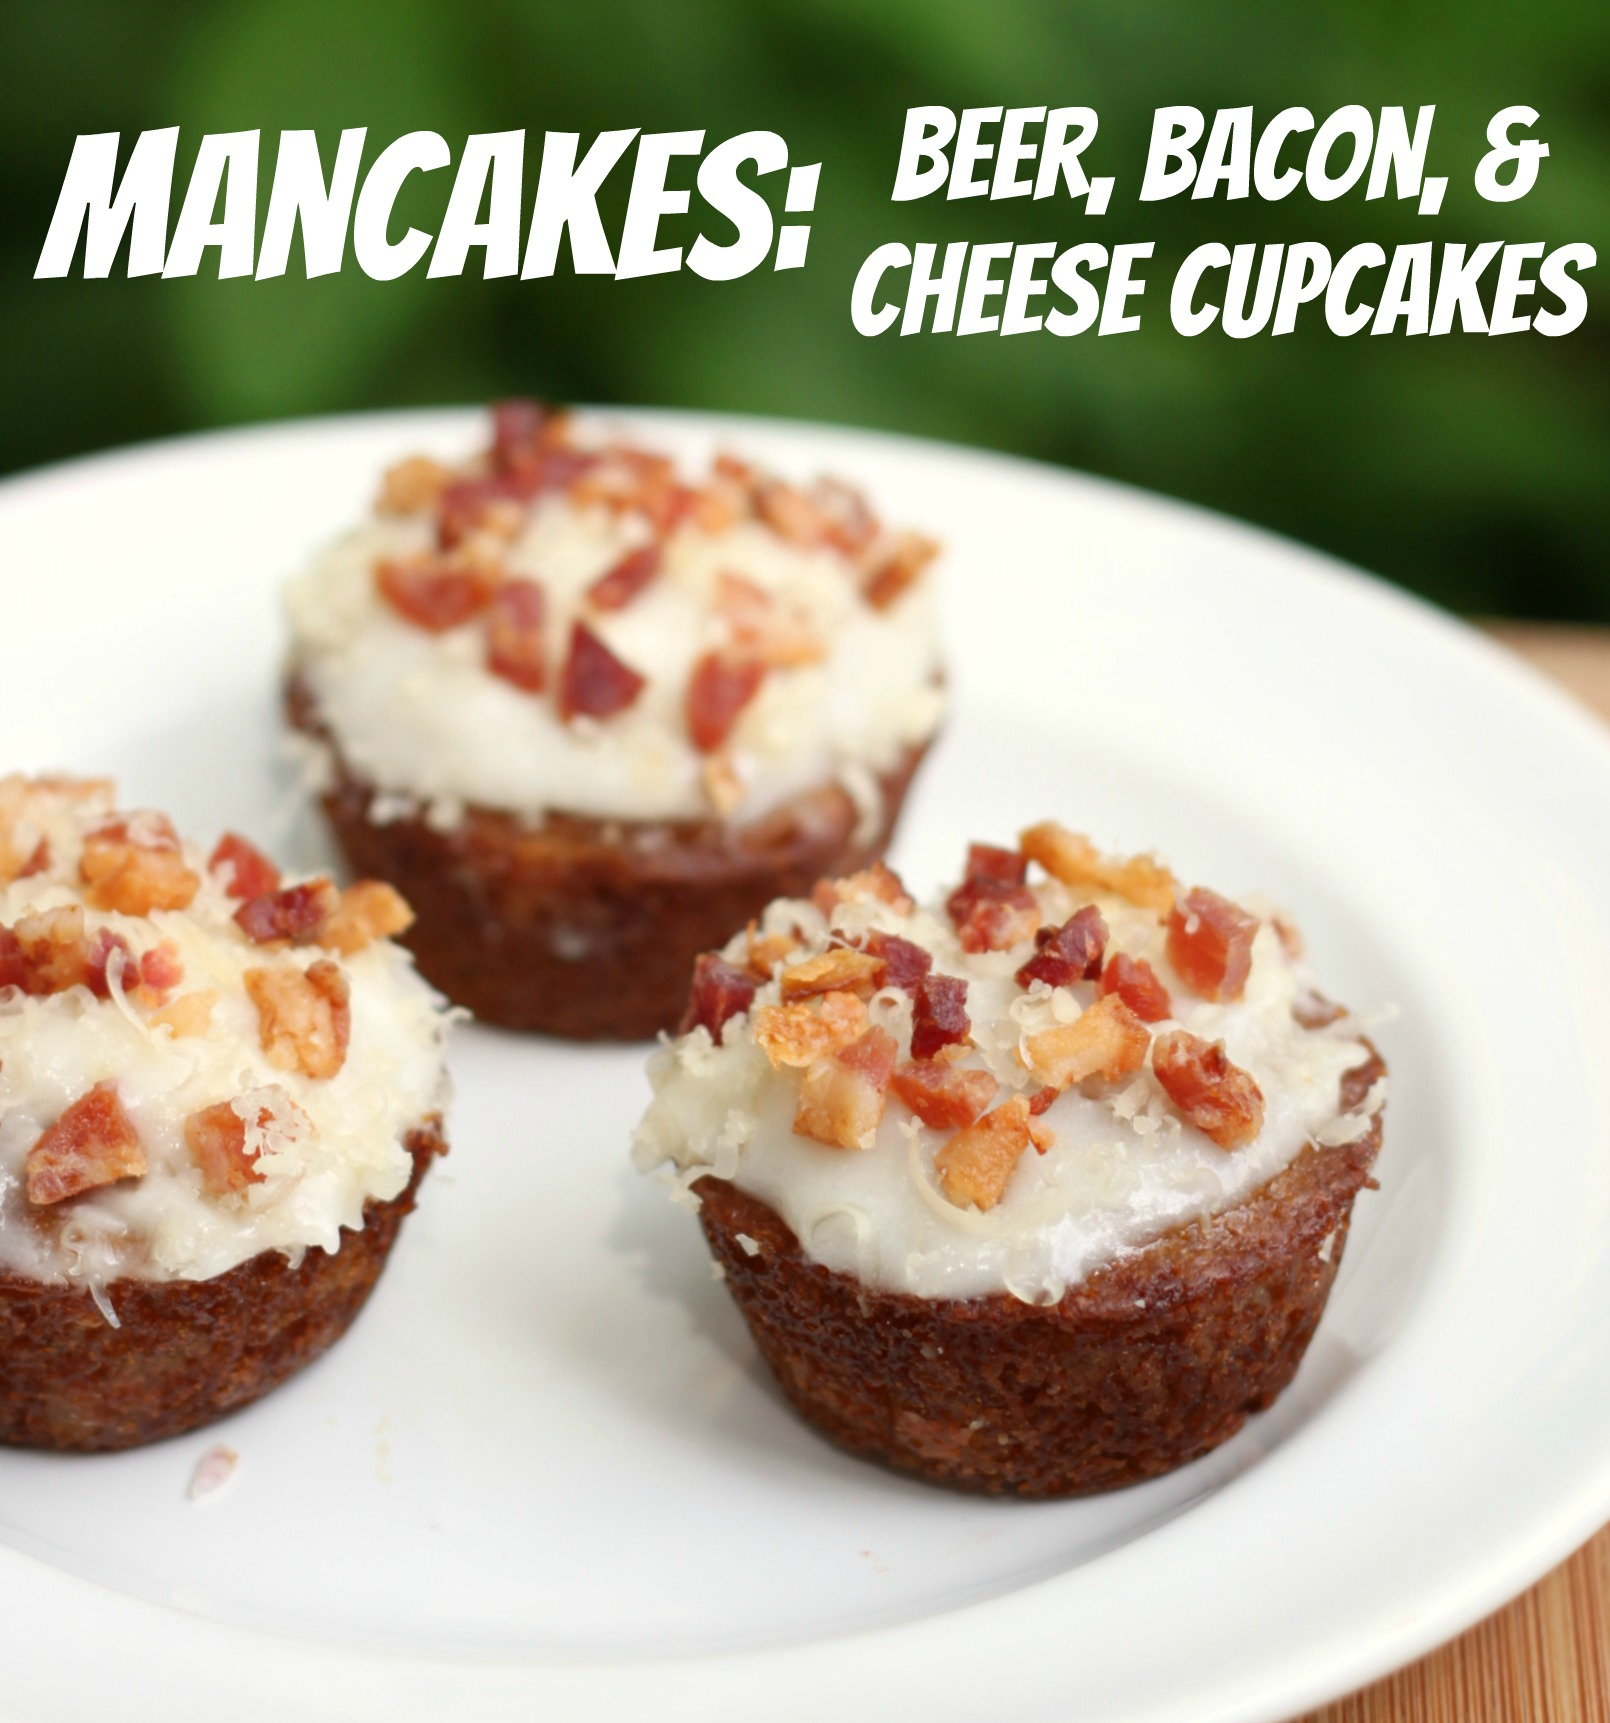 Recipe: (Mancakes) Beer, bacon and cheese cupcakes